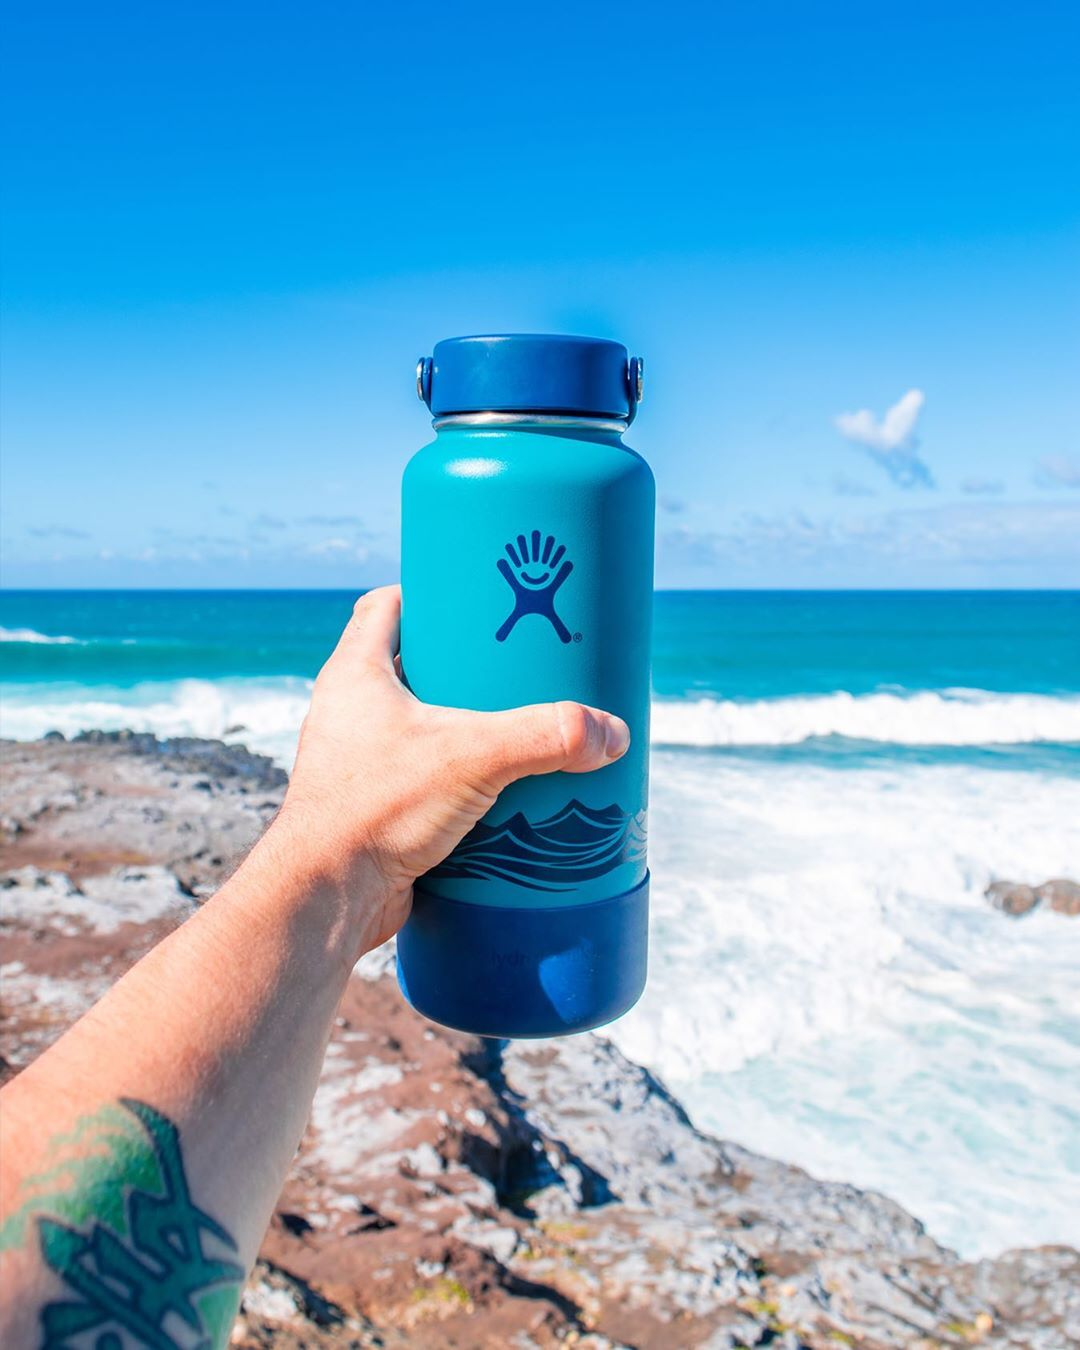 Hydroflask Image Fathers Day Gift.jpg